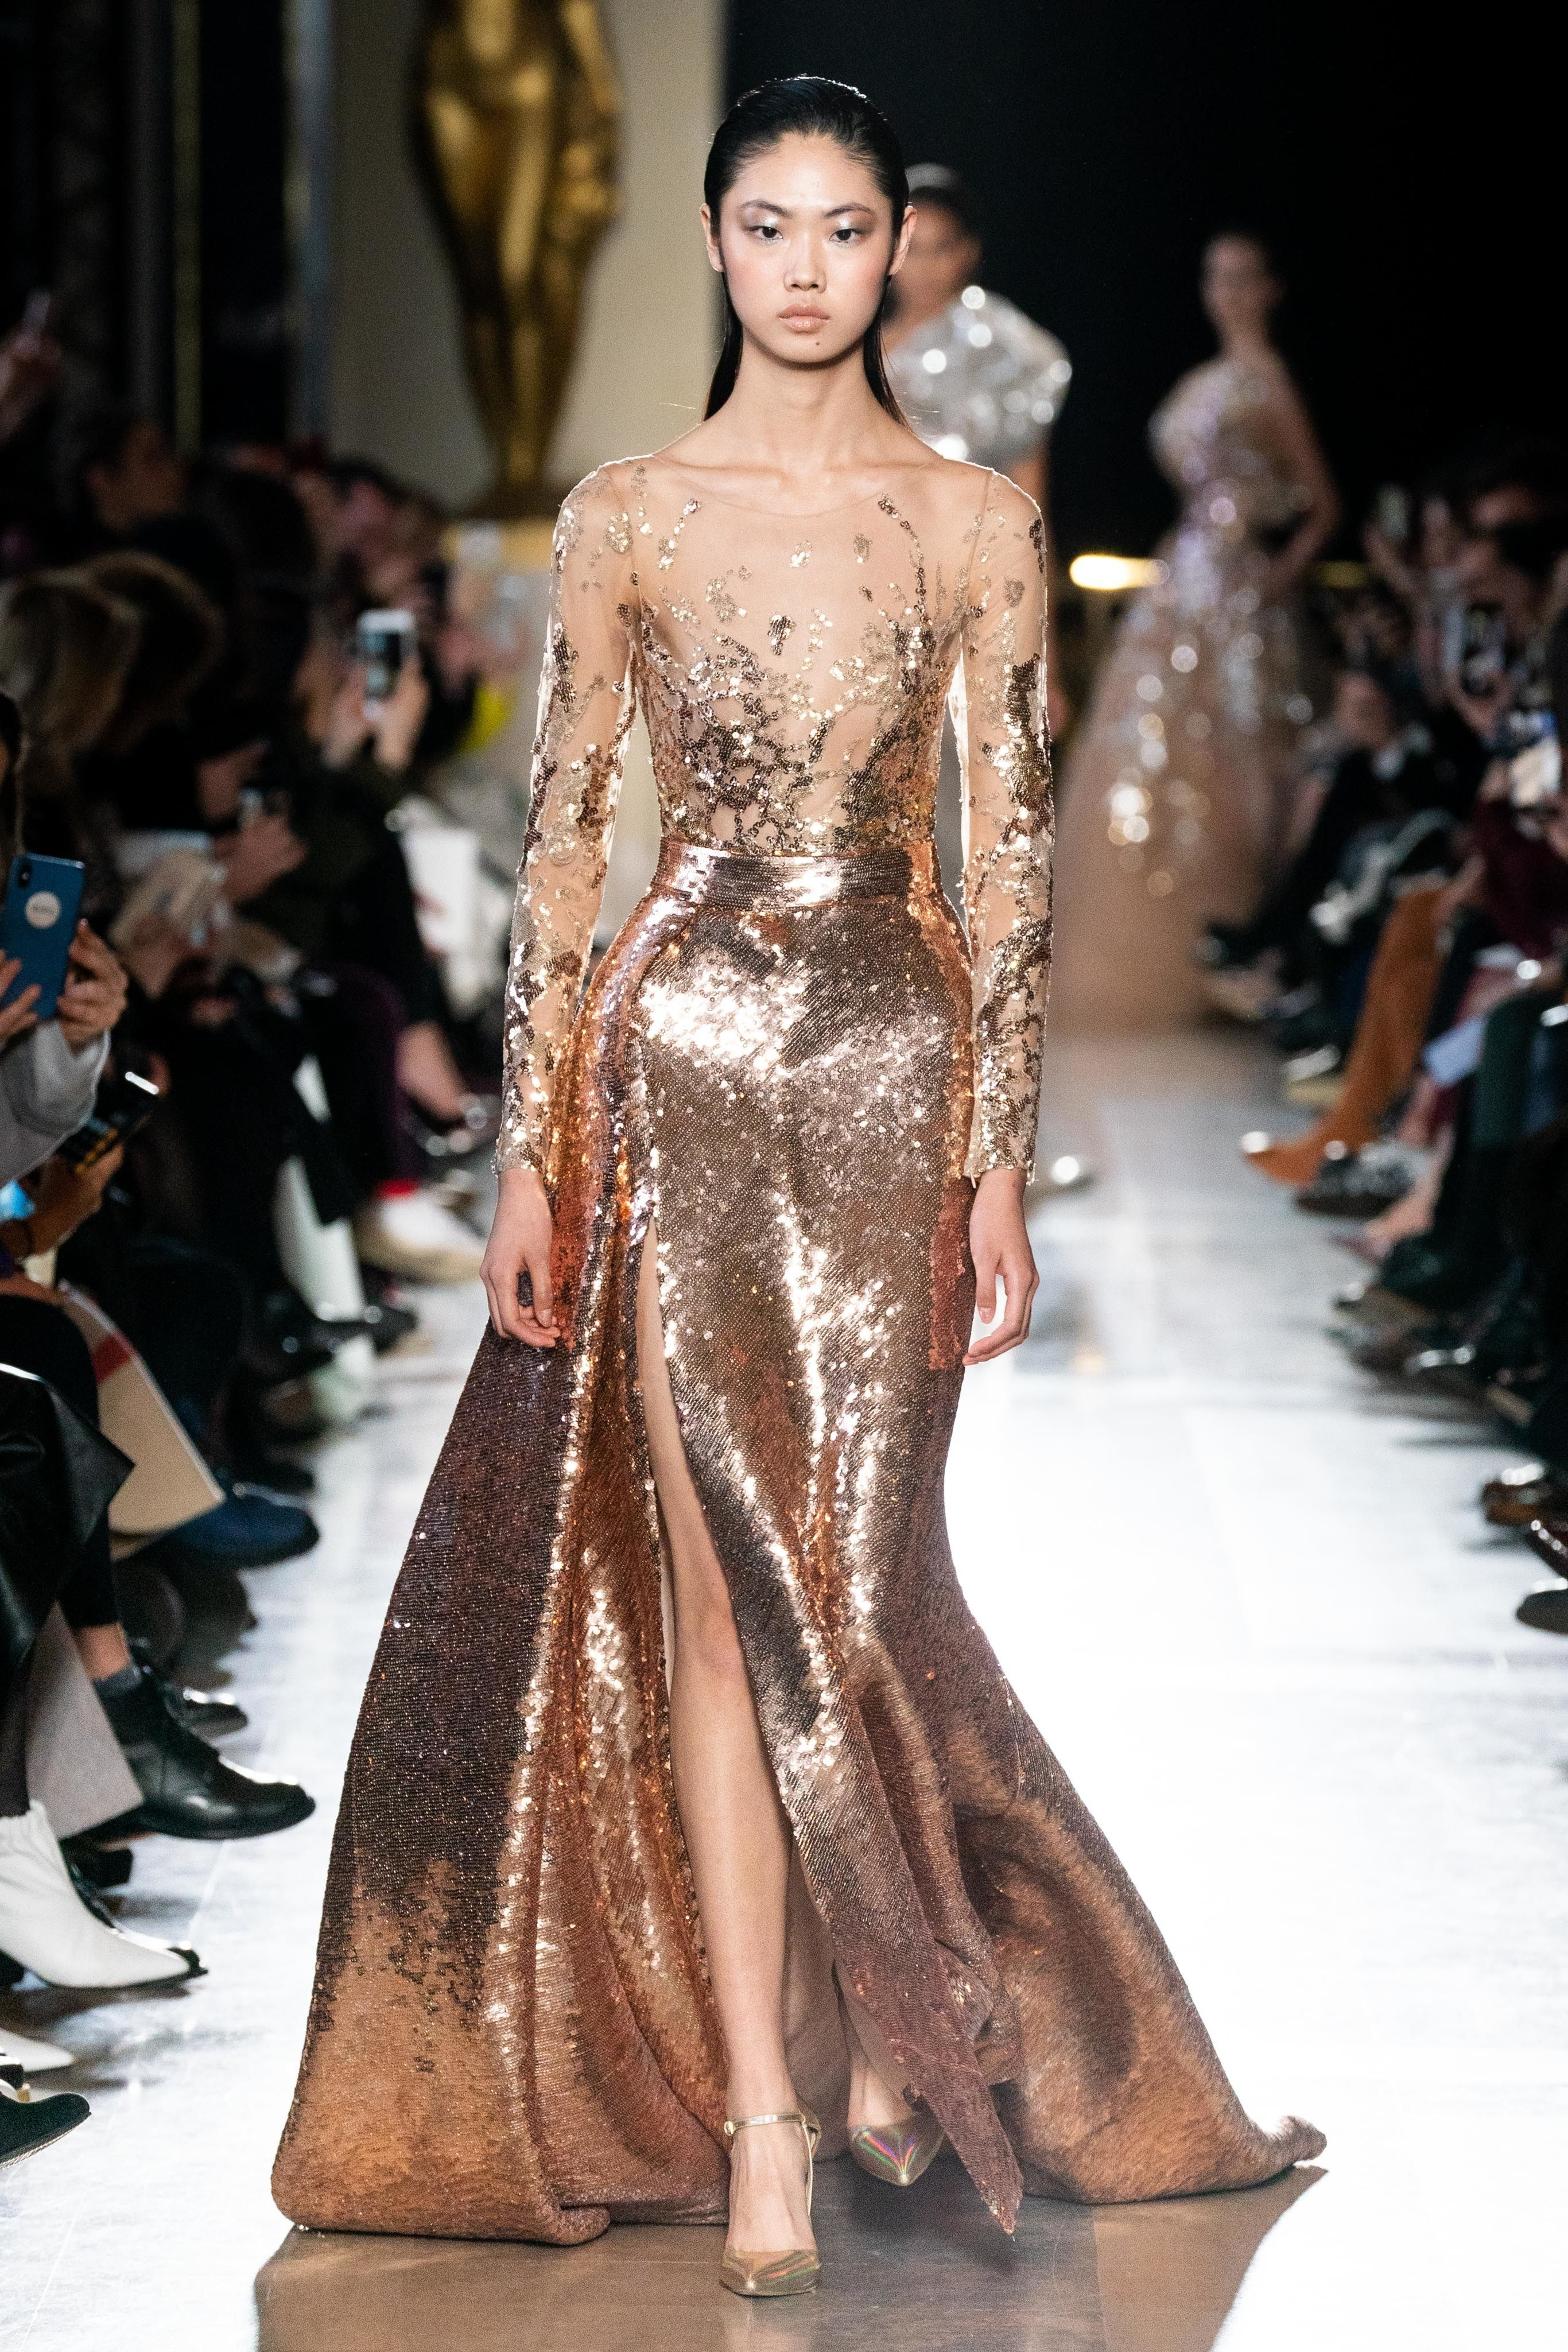 39efaa963fc75 Elie Saab Spring 2019 Couture Fashion Show in 2019 | What the ...